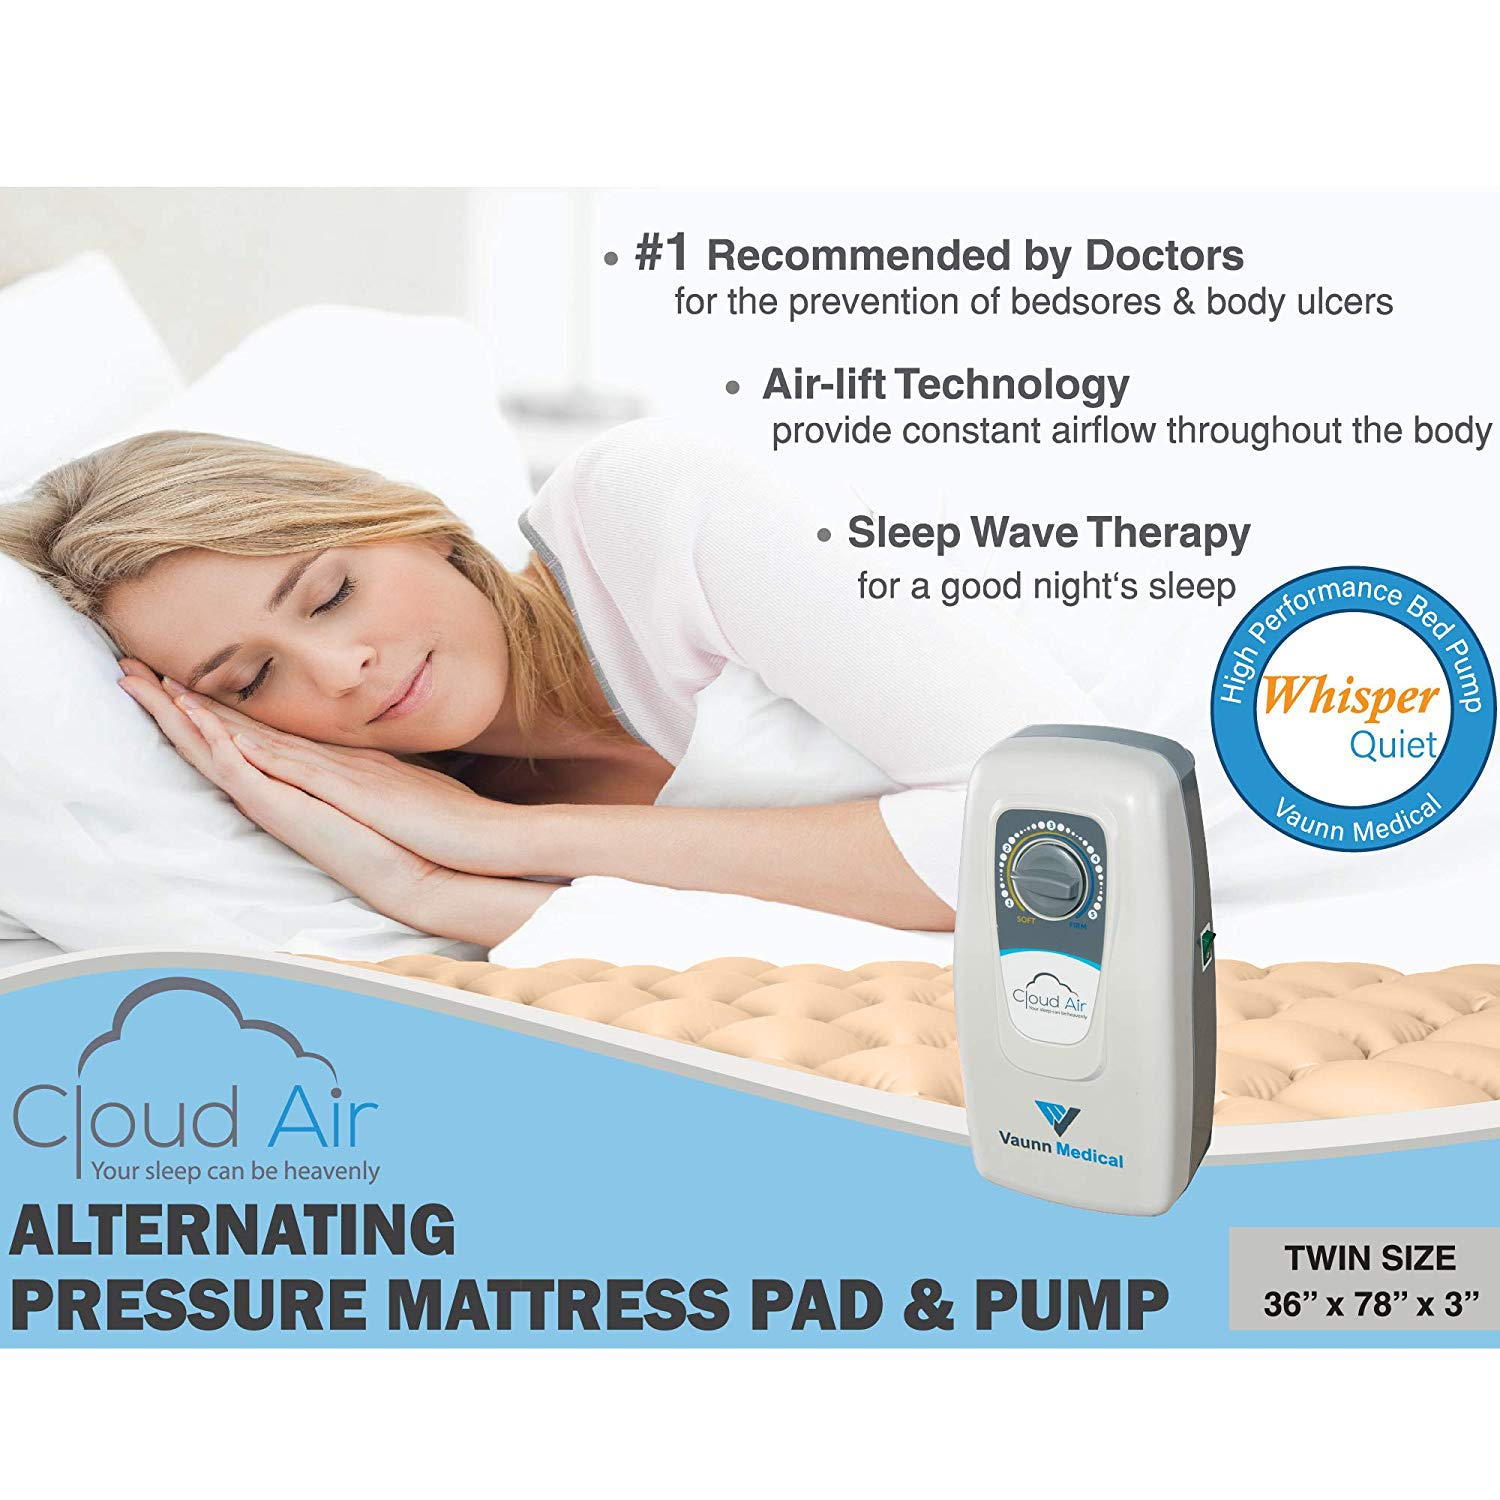 Vaunn Medical Cloud Air Whisper Quiet Alternating Air Pressure Mattress Topper with Pump Twin Size 36'' x 78'' x 3'' by Vaunn